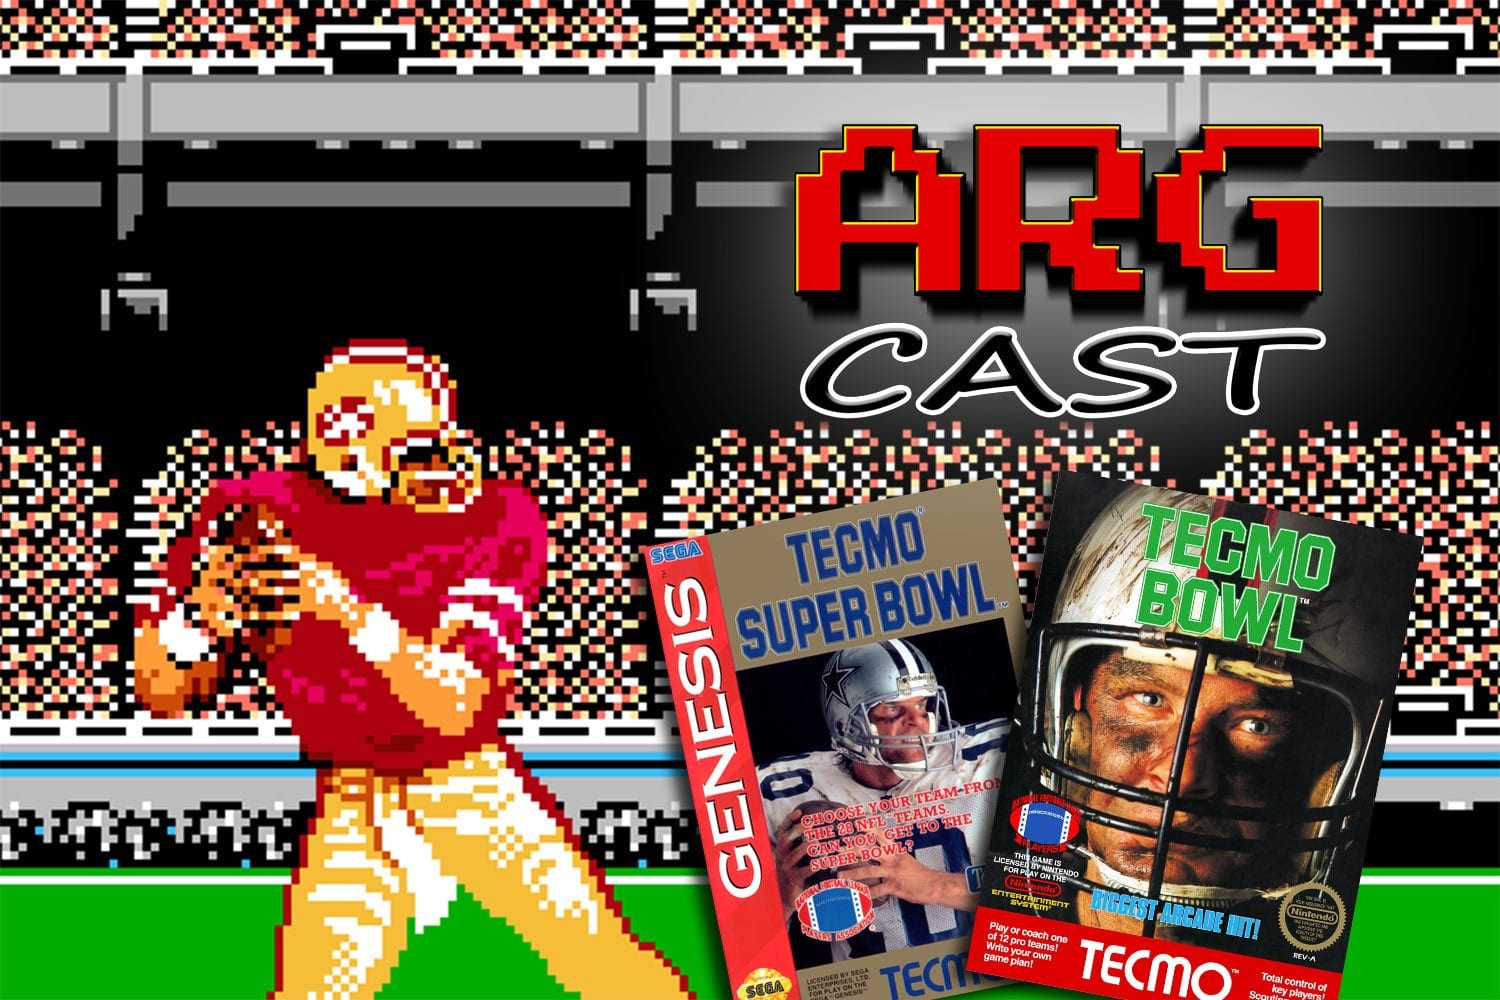 ARGcast #94: Competing in Tecmo Bowl with Tecmo Bowler Dave Murray